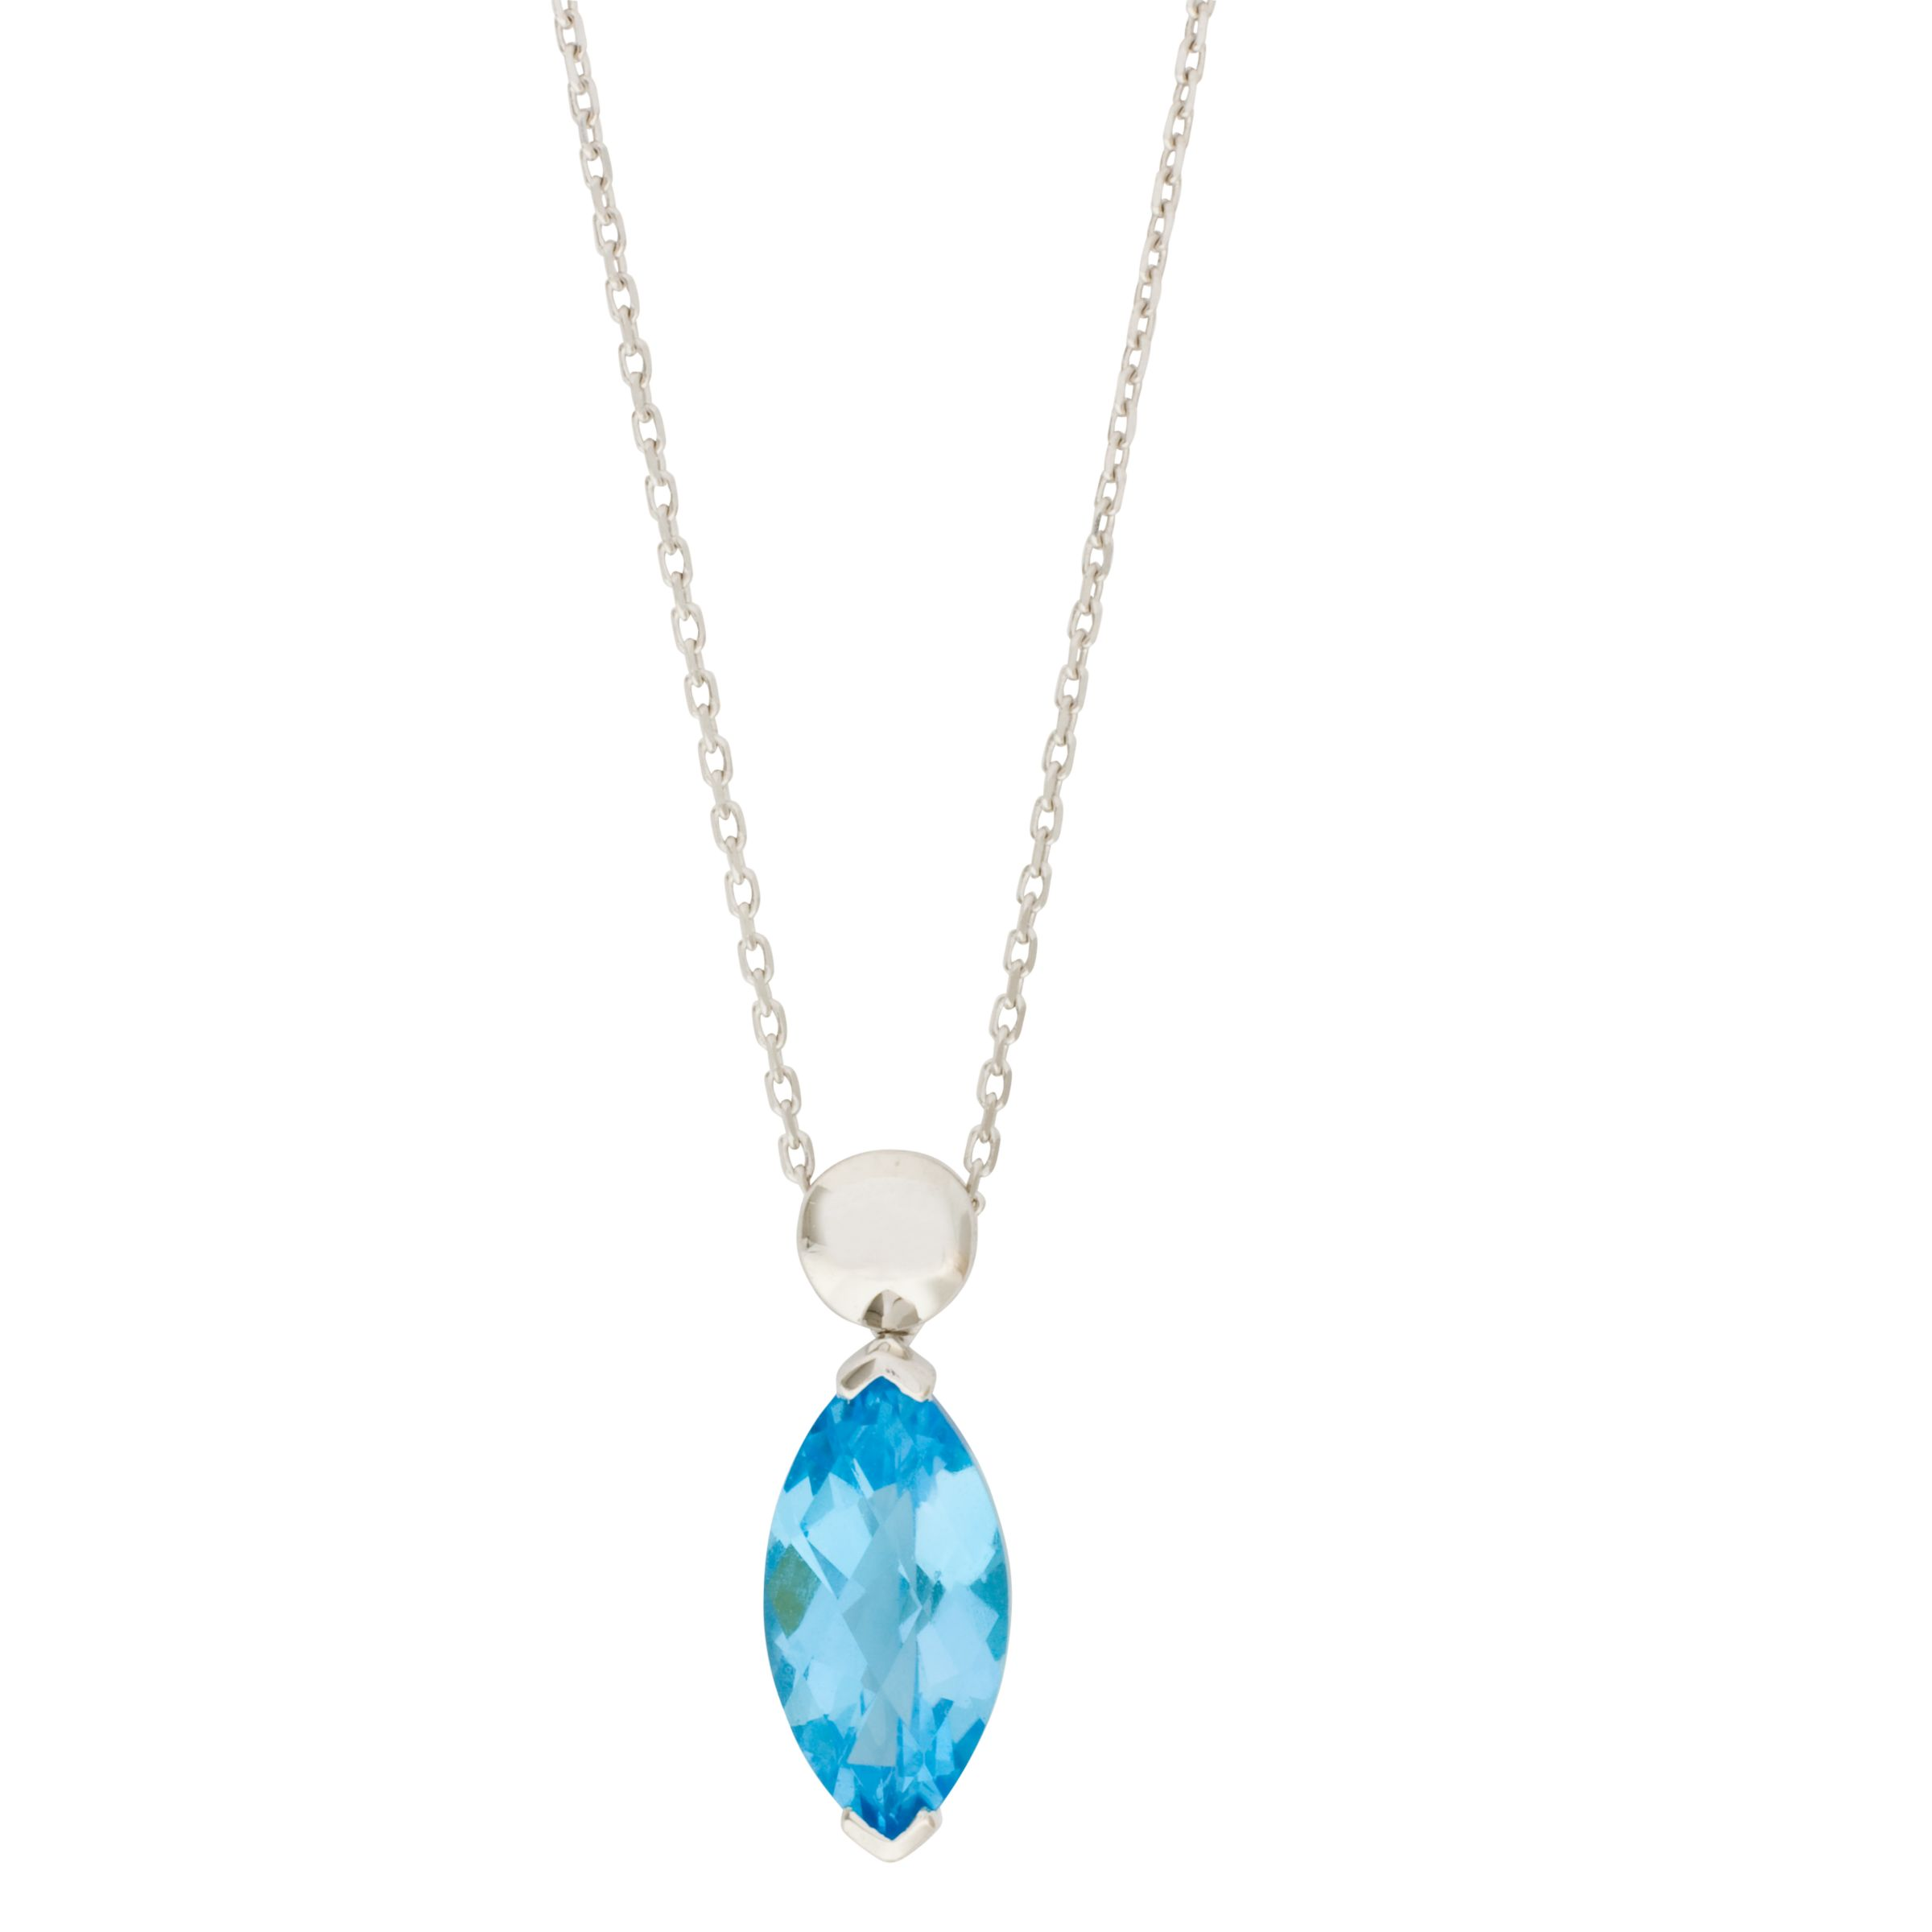 London Road Gold Topaz Pendant Necklace